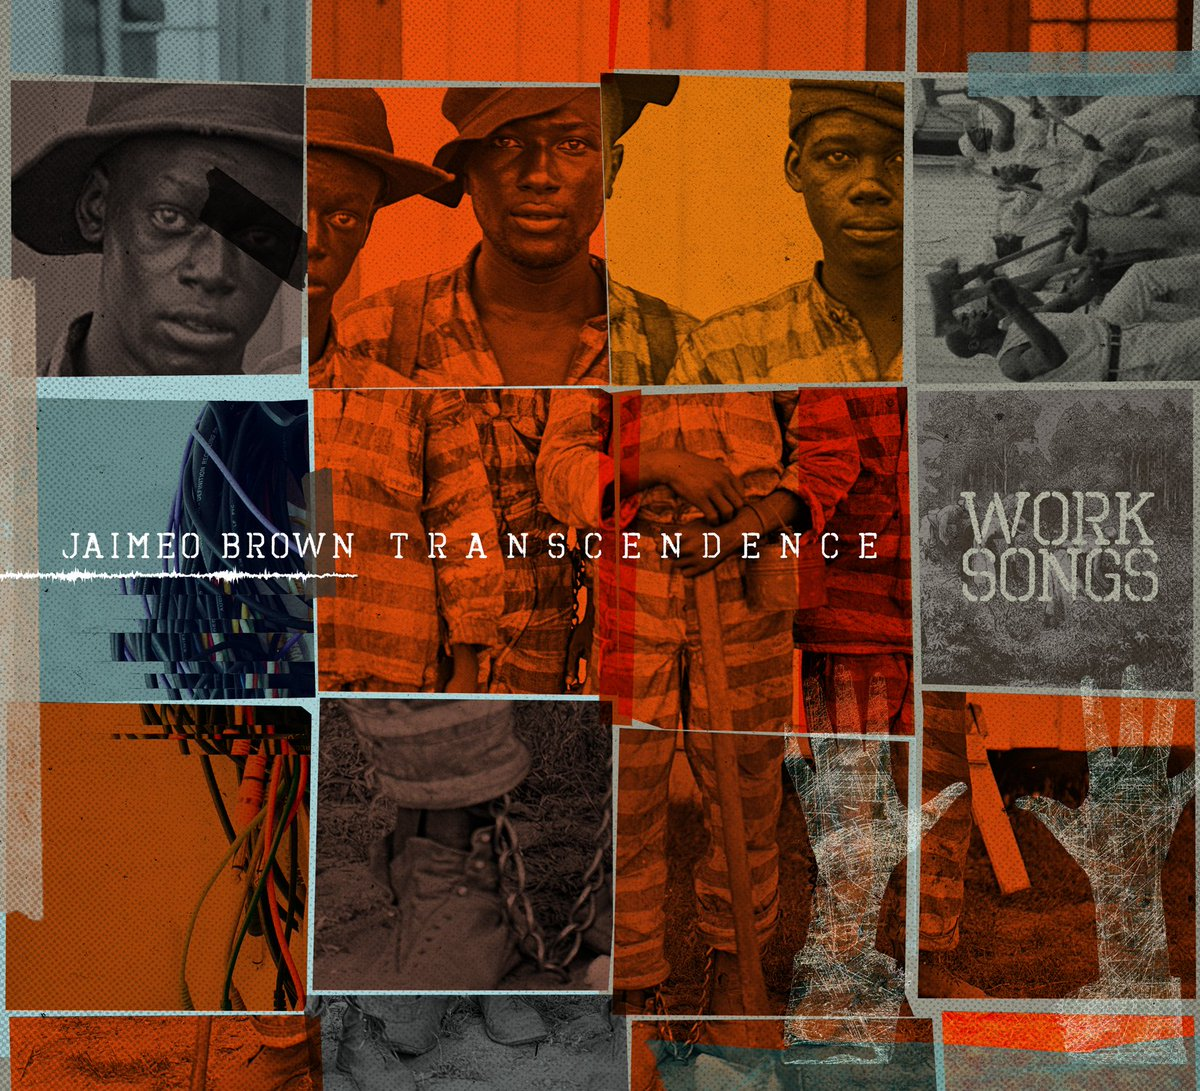 Review of Jaimeo Brown Transcendence: Work Songs